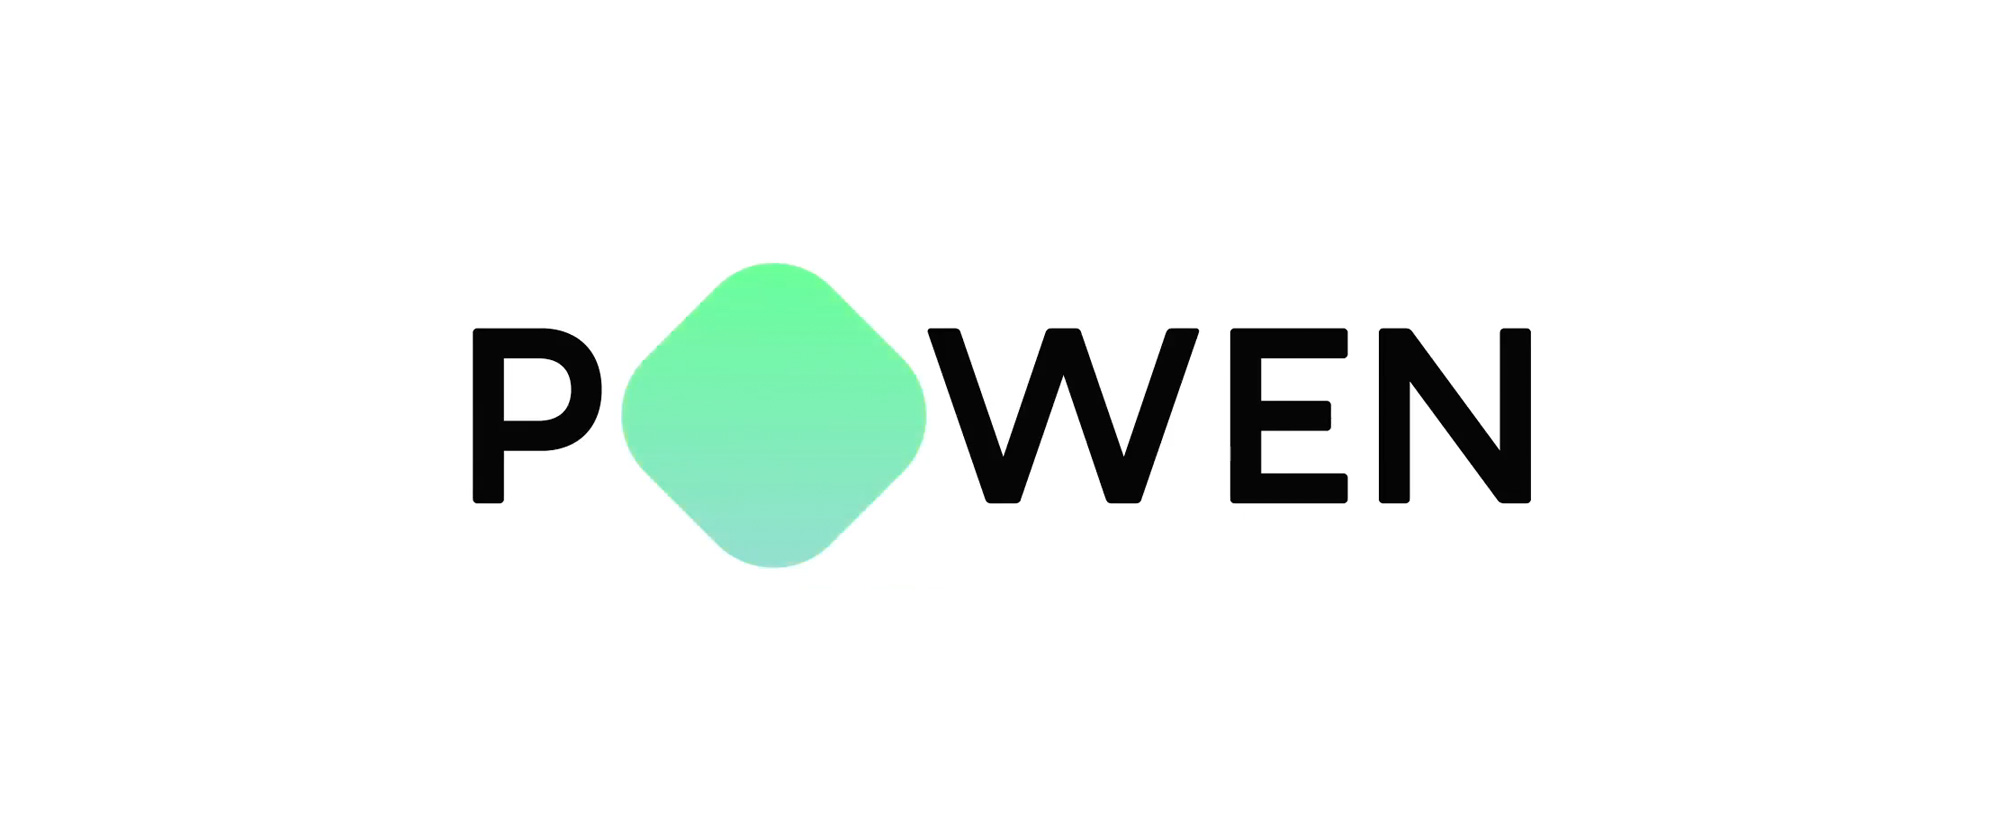 New Name, Logo, and Identity for POWEN by Saffron